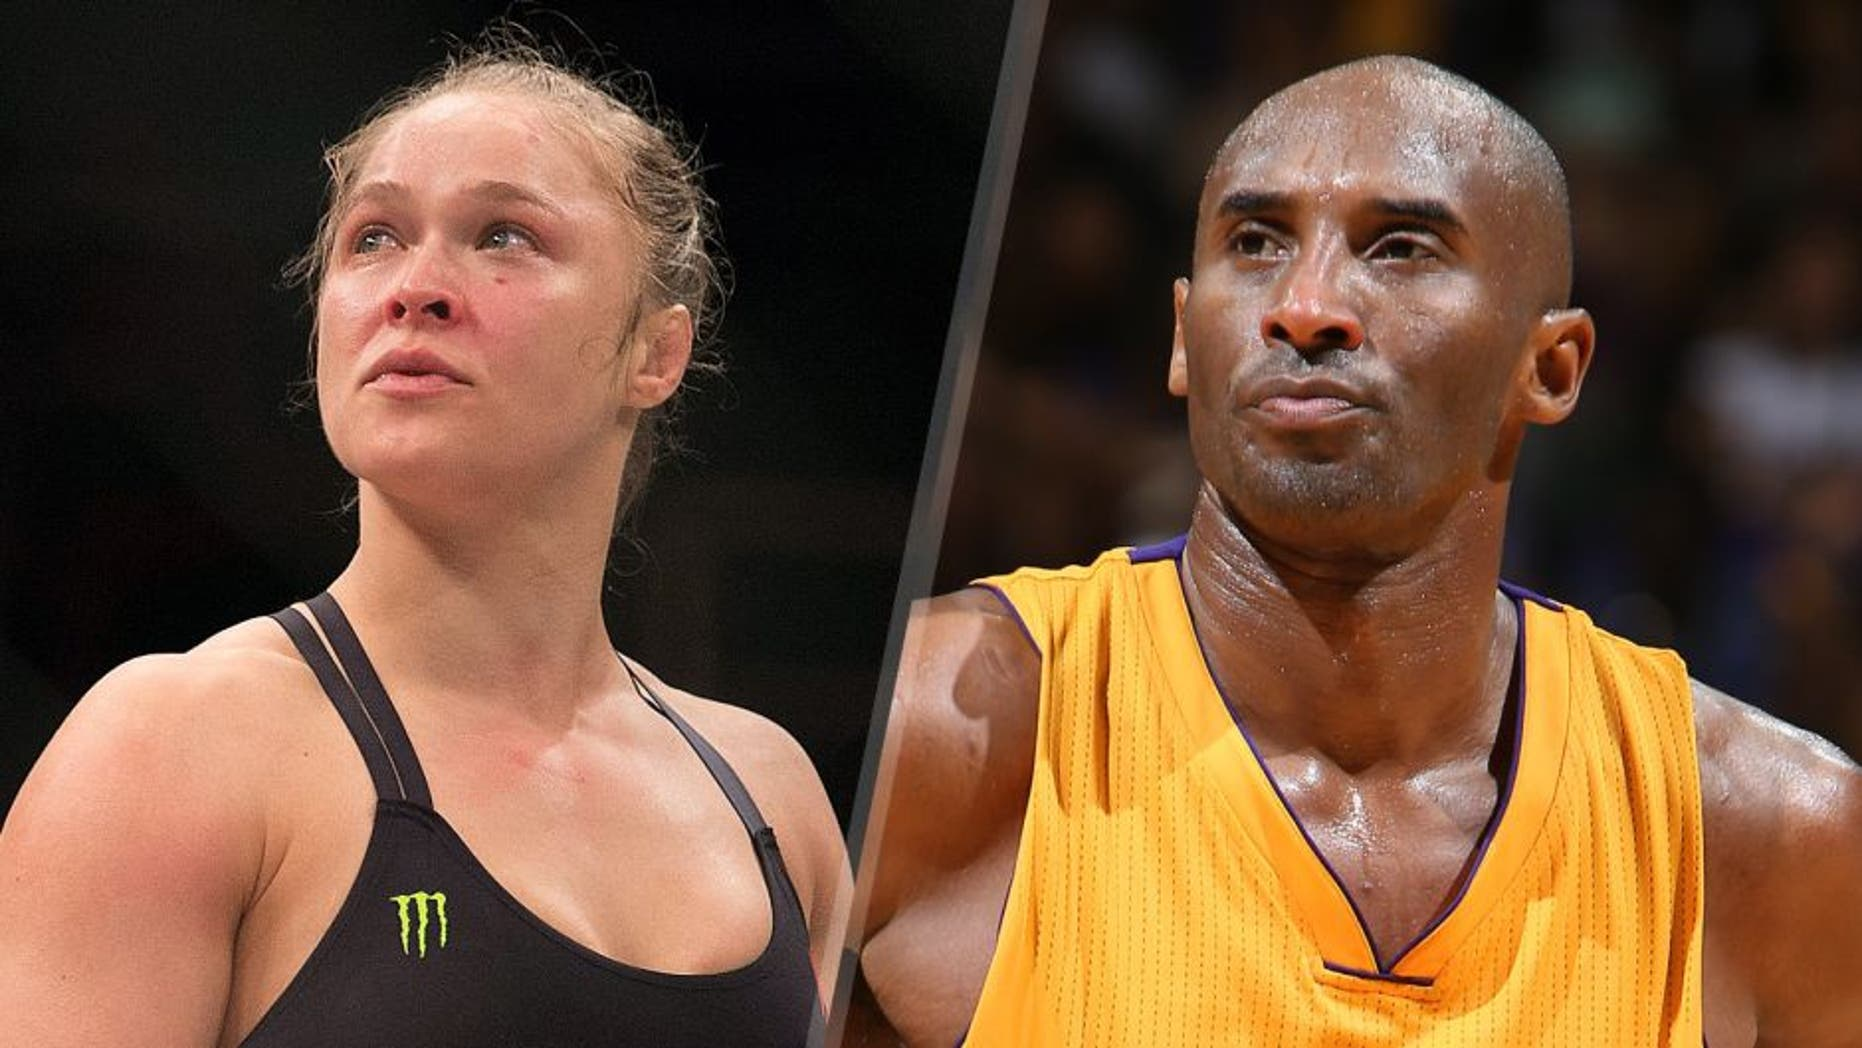 UFC women's bantamweight champion Ronda Rousey celebrates after defeating Bethe Correia of Brazil by KO during the UFC 190 event inside HSBC Arena on August 1, 2015 in Rio de Janeiro, Brazil. (Photo by Jeff Bottari/Zuffa LLC/Zuffa LLC via Getty Images) Kobe Bryant #24 of the Los Angeles Lakers looks on against the Utah Jazz during a preseason game on October 6, 2015 at the Stan Sheriff Center in Honolulu, Hawaii. NOTE TO USER: User expressly acknowledges and agrees that, by downloading and or using this Photograph, user is consenting to the terms and conditions of the Getty Images License Agreement. Mandatory Copyright Notice: Copyright 2015 NBAE (Photo by Jay Metzger/NBAE via Getty Images)